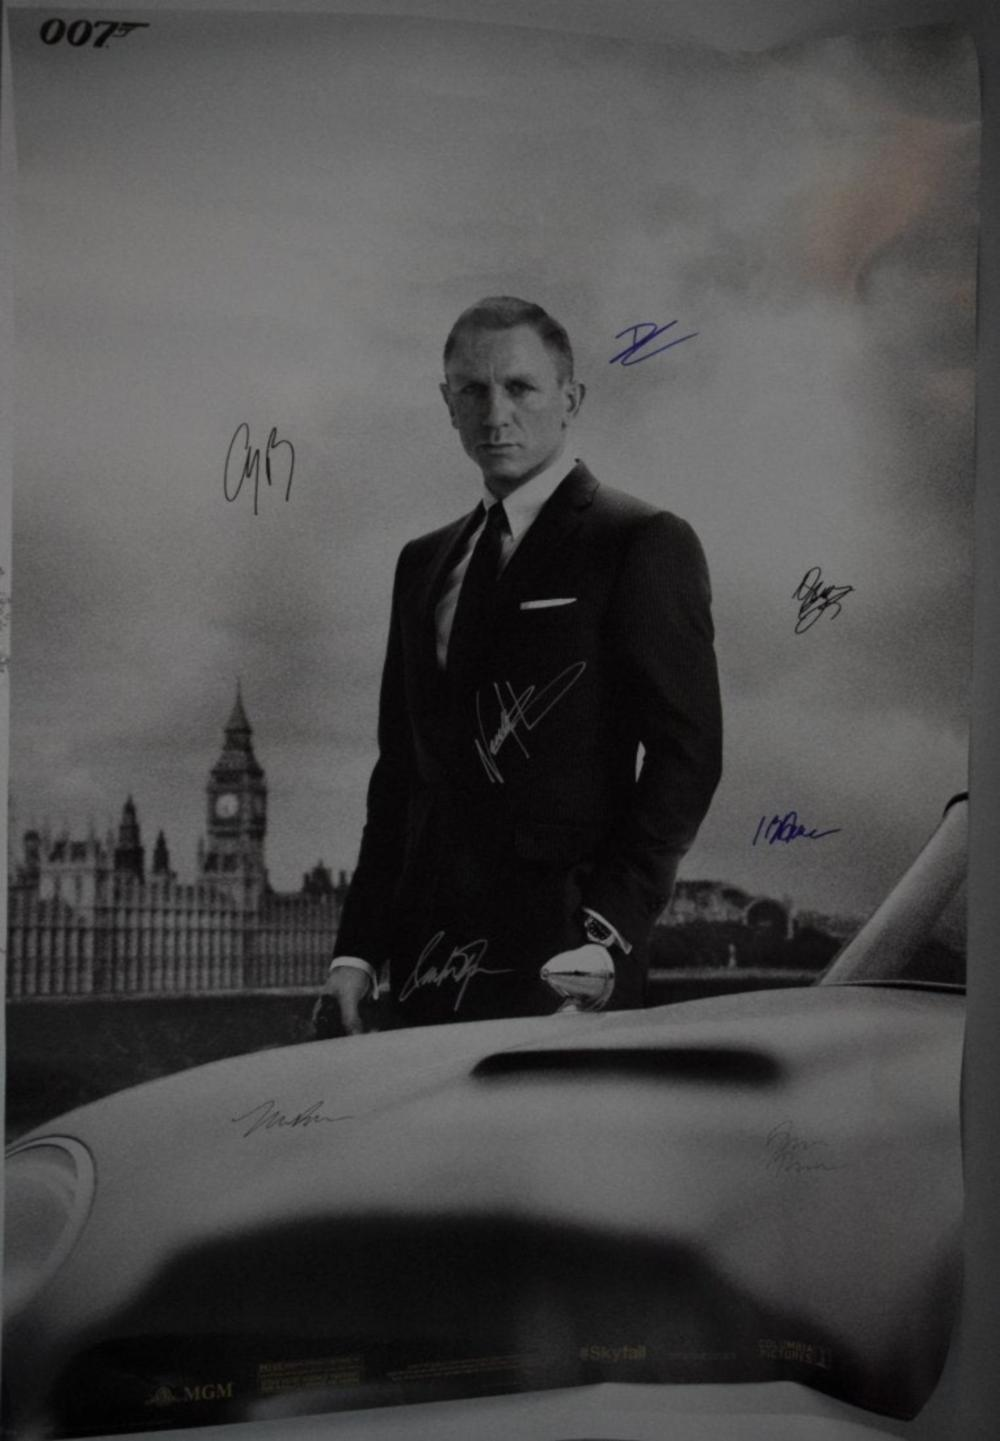 James Bond Movie Poster (Signed by Cast)